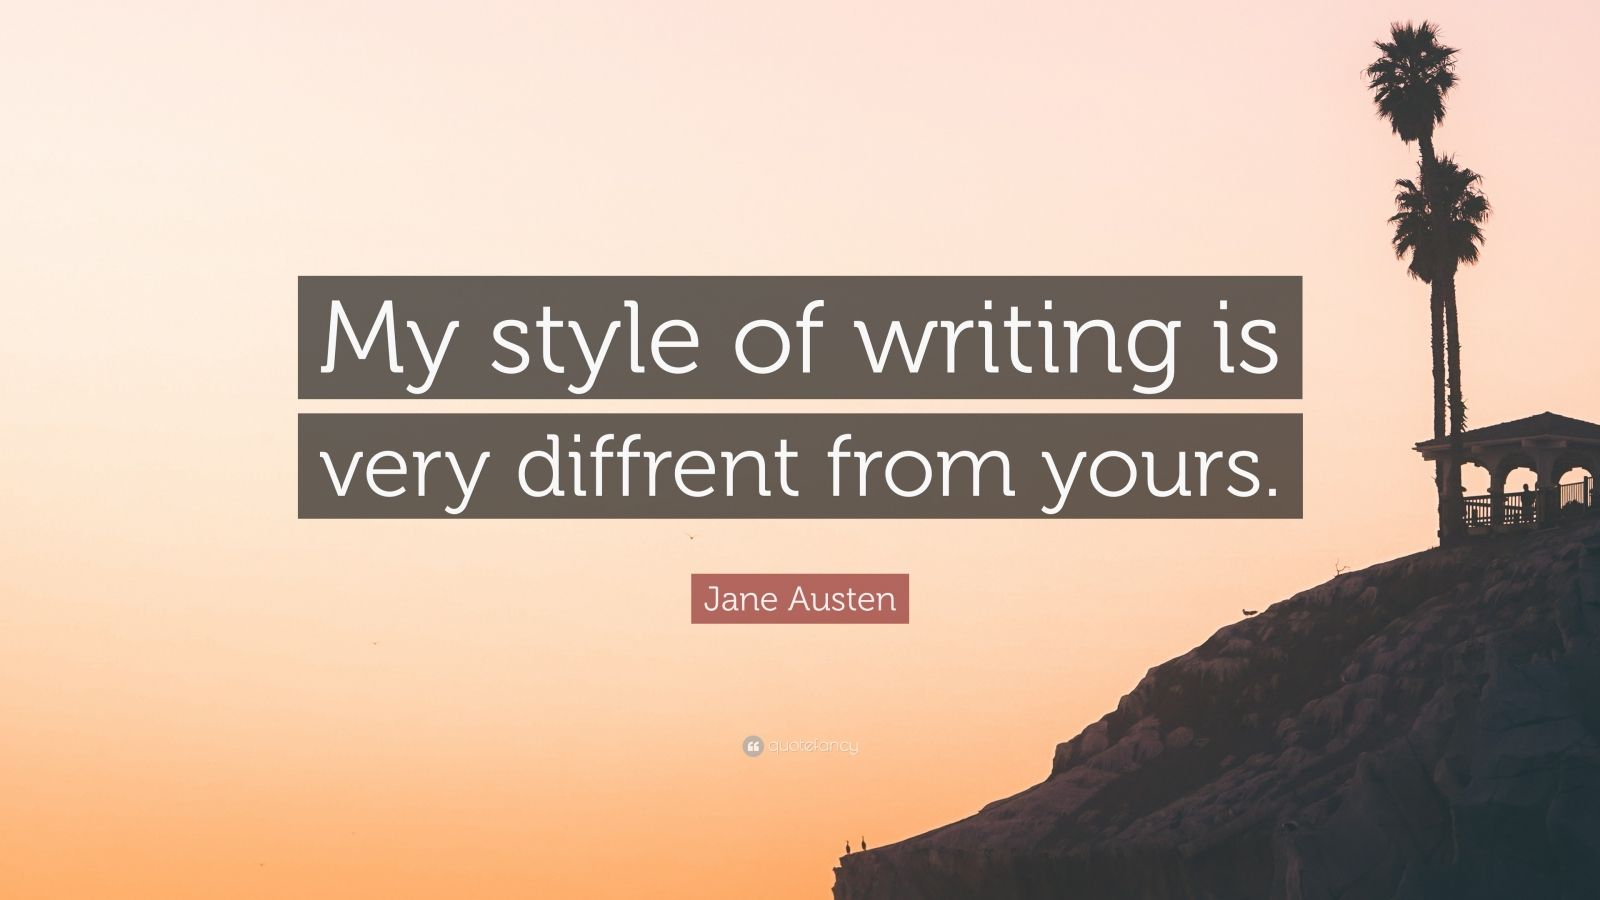 jane austens style of writing Jane austen writing styles in lady susan jane austen this study guide consists of approximately 36 pages of chapter summaries, quotes, character analysis, themes, and more - everything you need to sharpen your knowledge of lady susan.